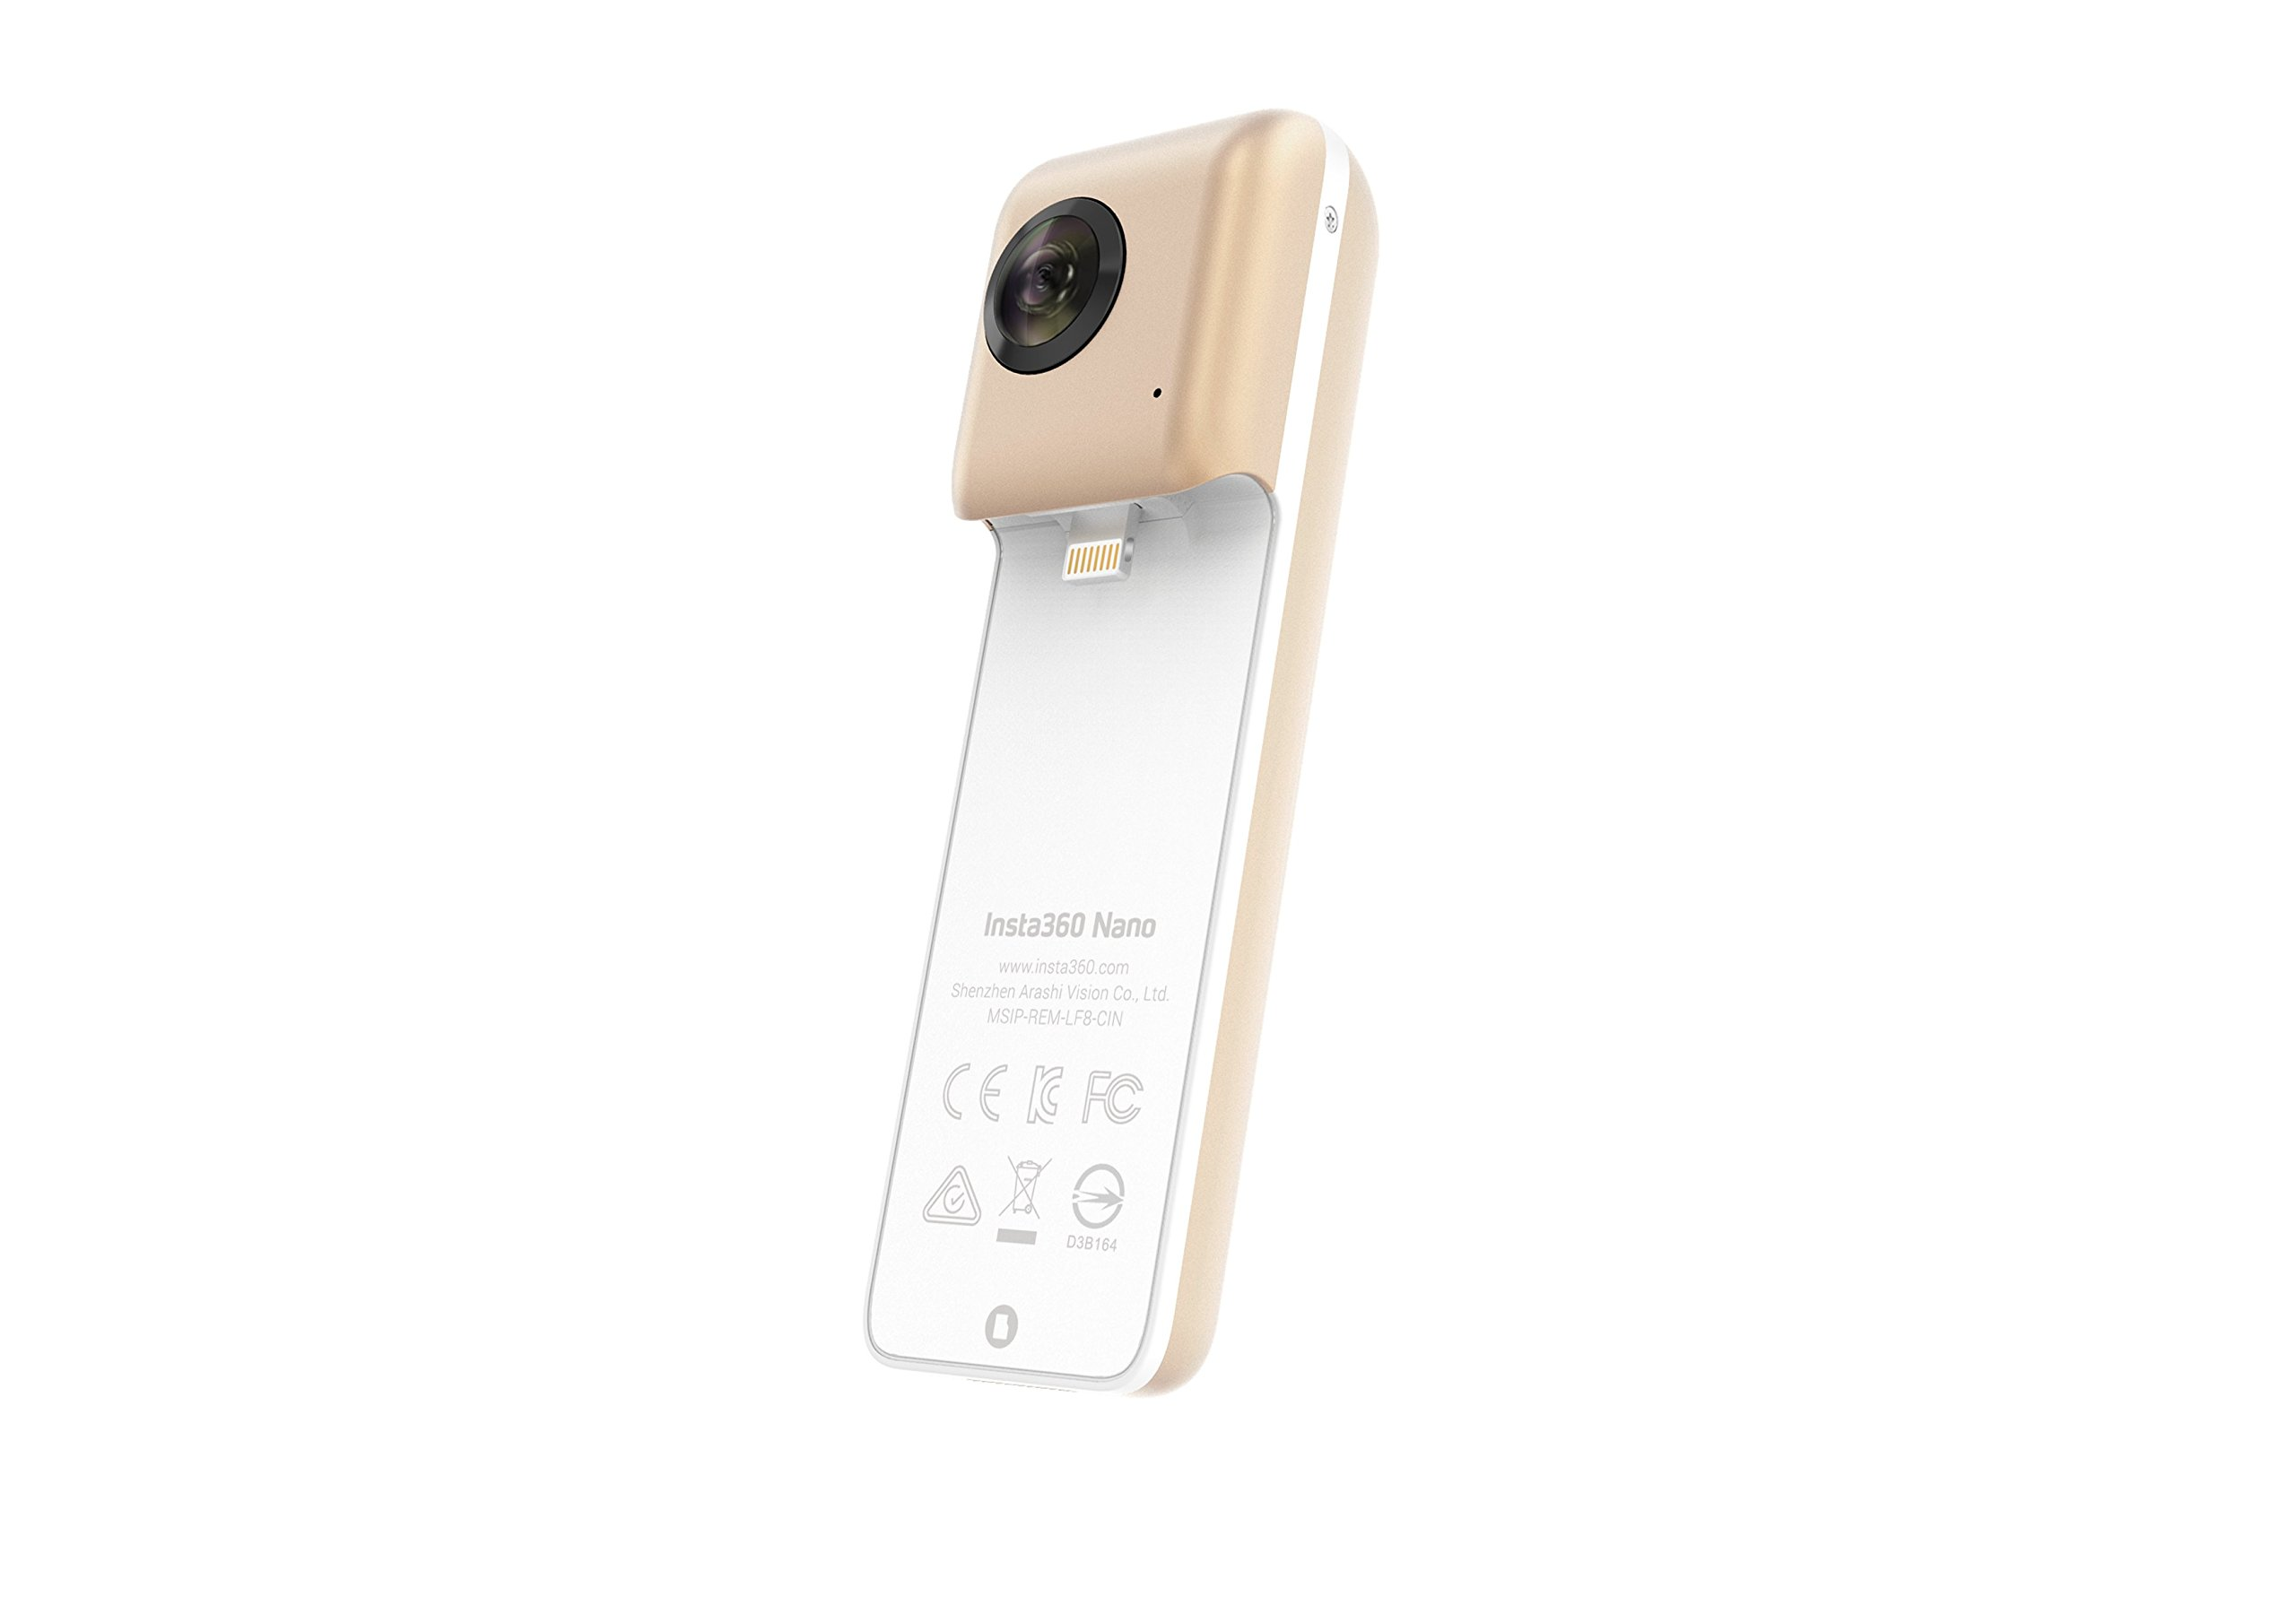 Insta360 Nano 360 Degree Camera VR 3D Panoramic Point and Shoot Digital Video Cameras 3K HD Dual Wide Angle Fisheye Lens for iPhone 7, 7 Plus and All iPhone 6 Series, 360 Live on Facebook by Insta360